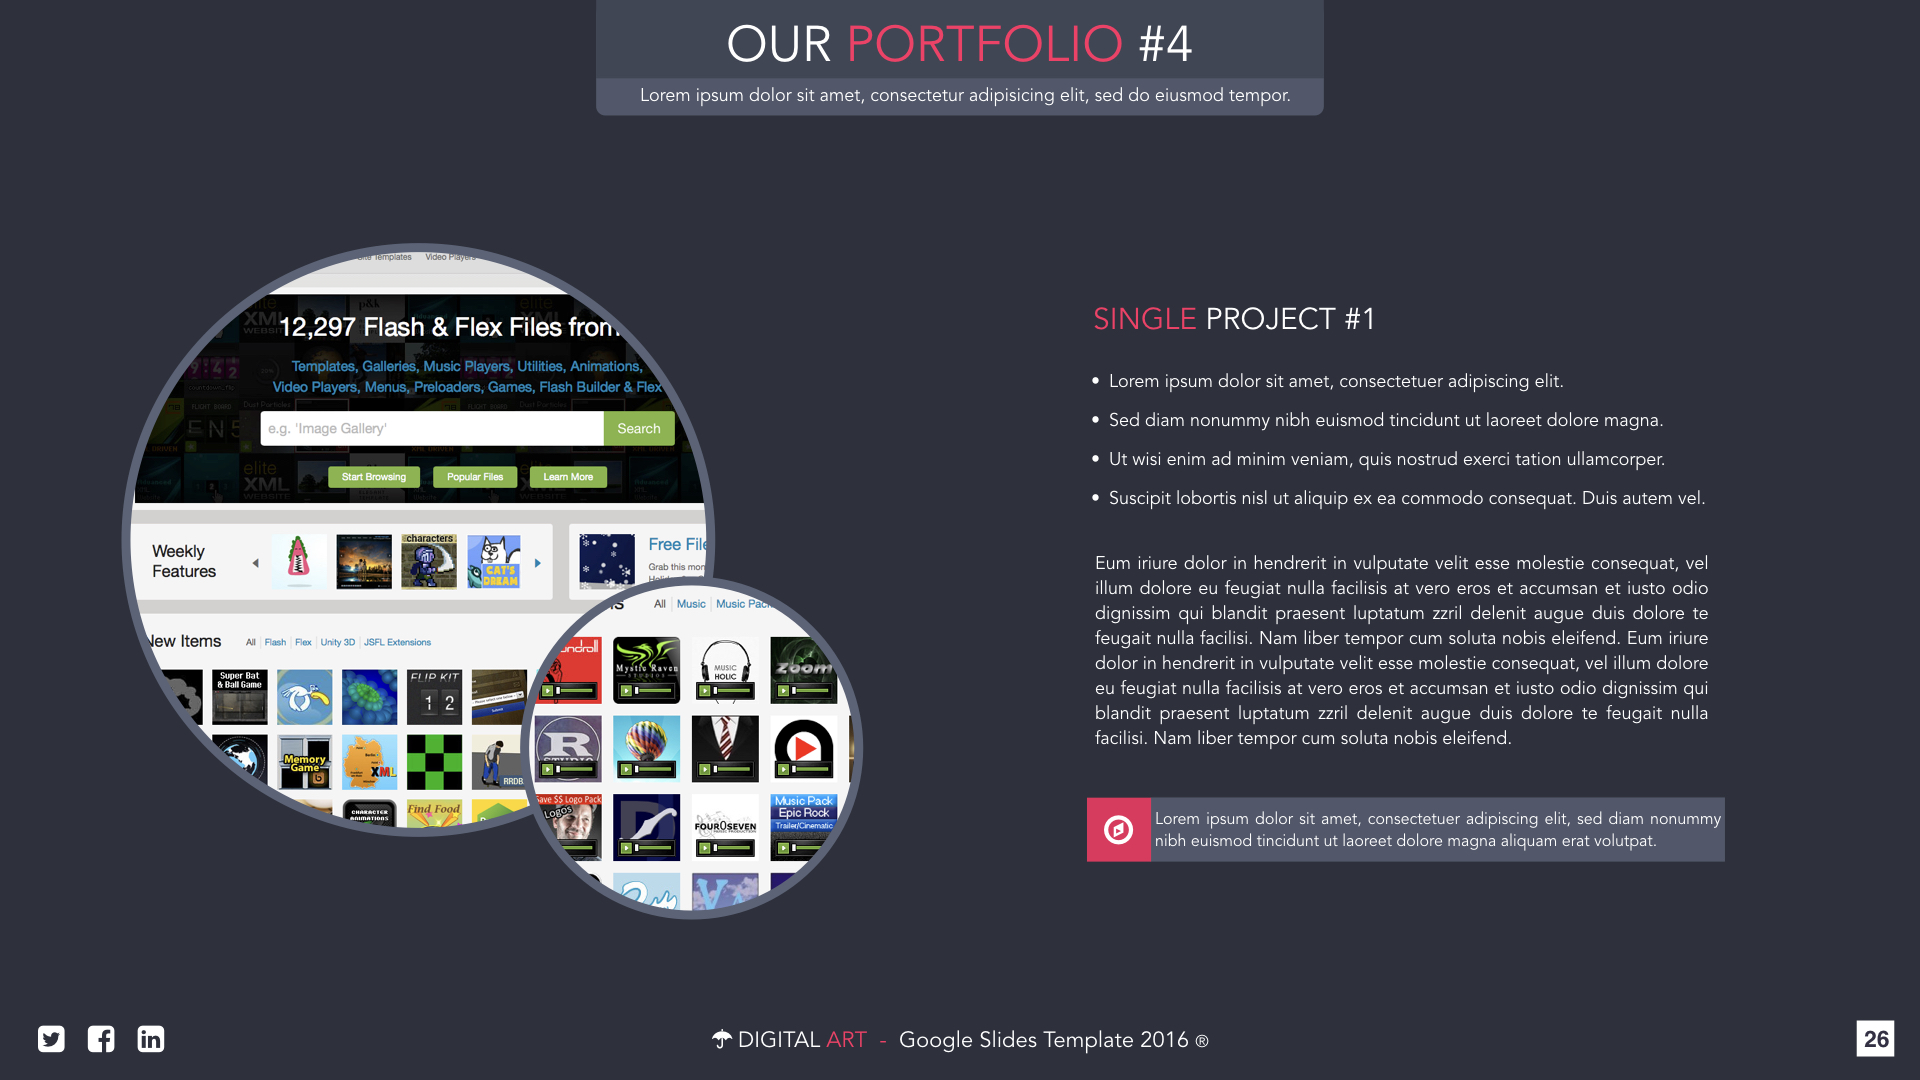 Digital Art - Google Slides Presentation Template by VigitalArt ...